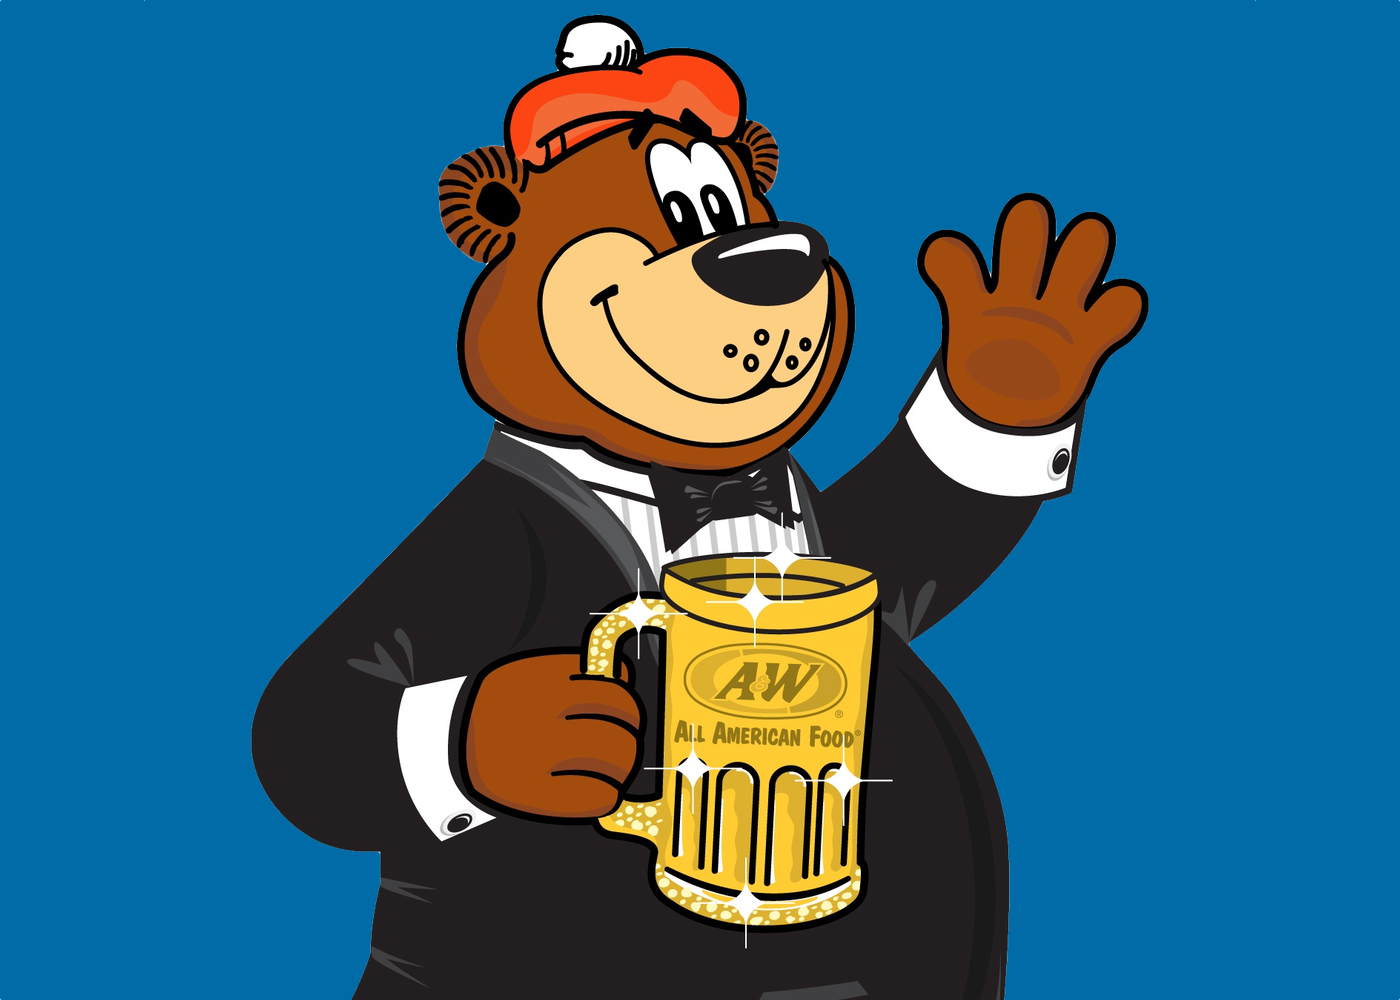 Rooty the Great Root Bear in a tuxedo holding a golden mug